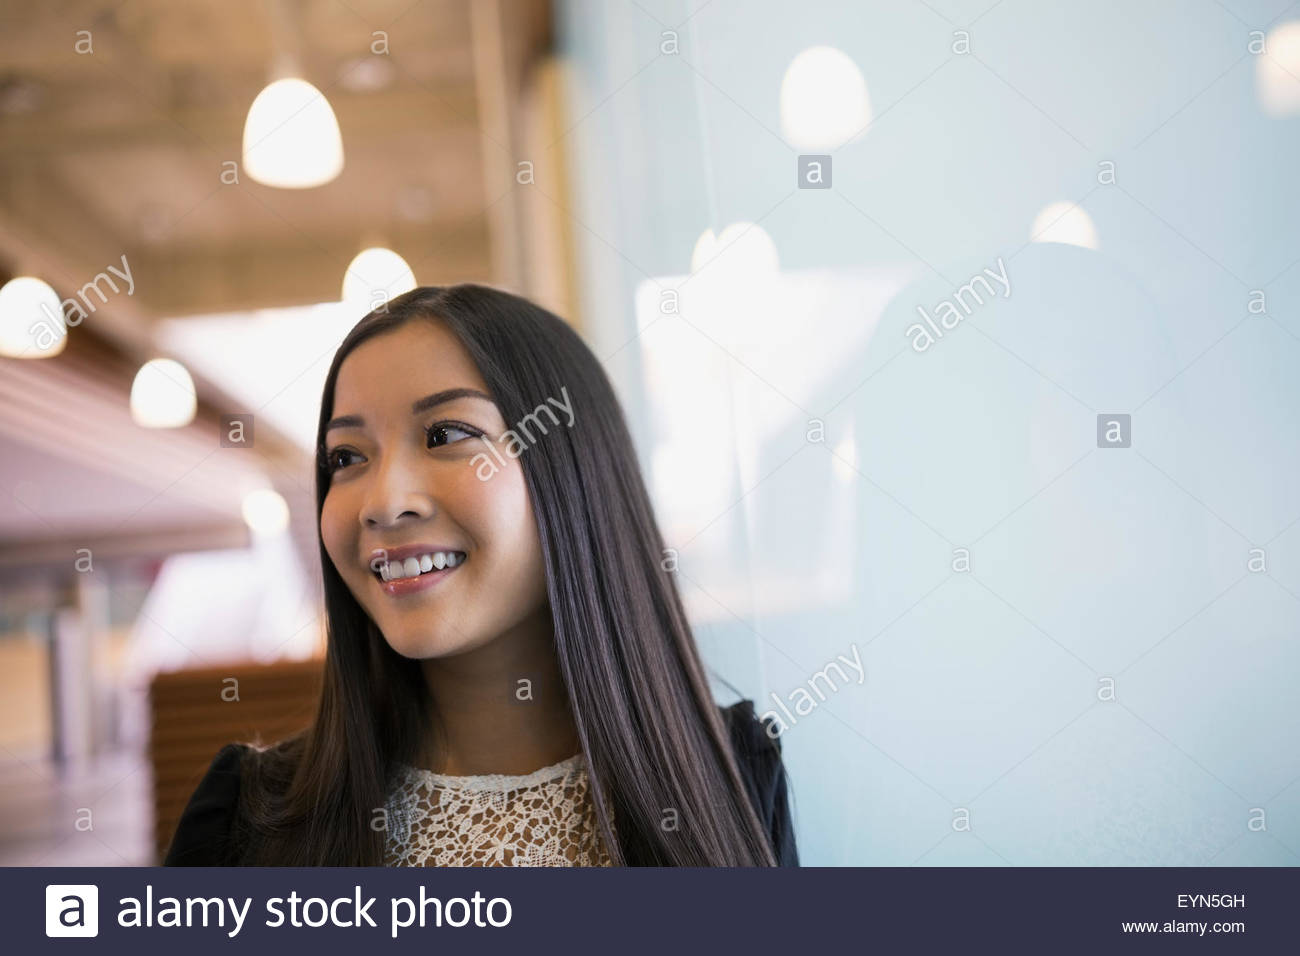 Smiling woman looking away - Stock Image